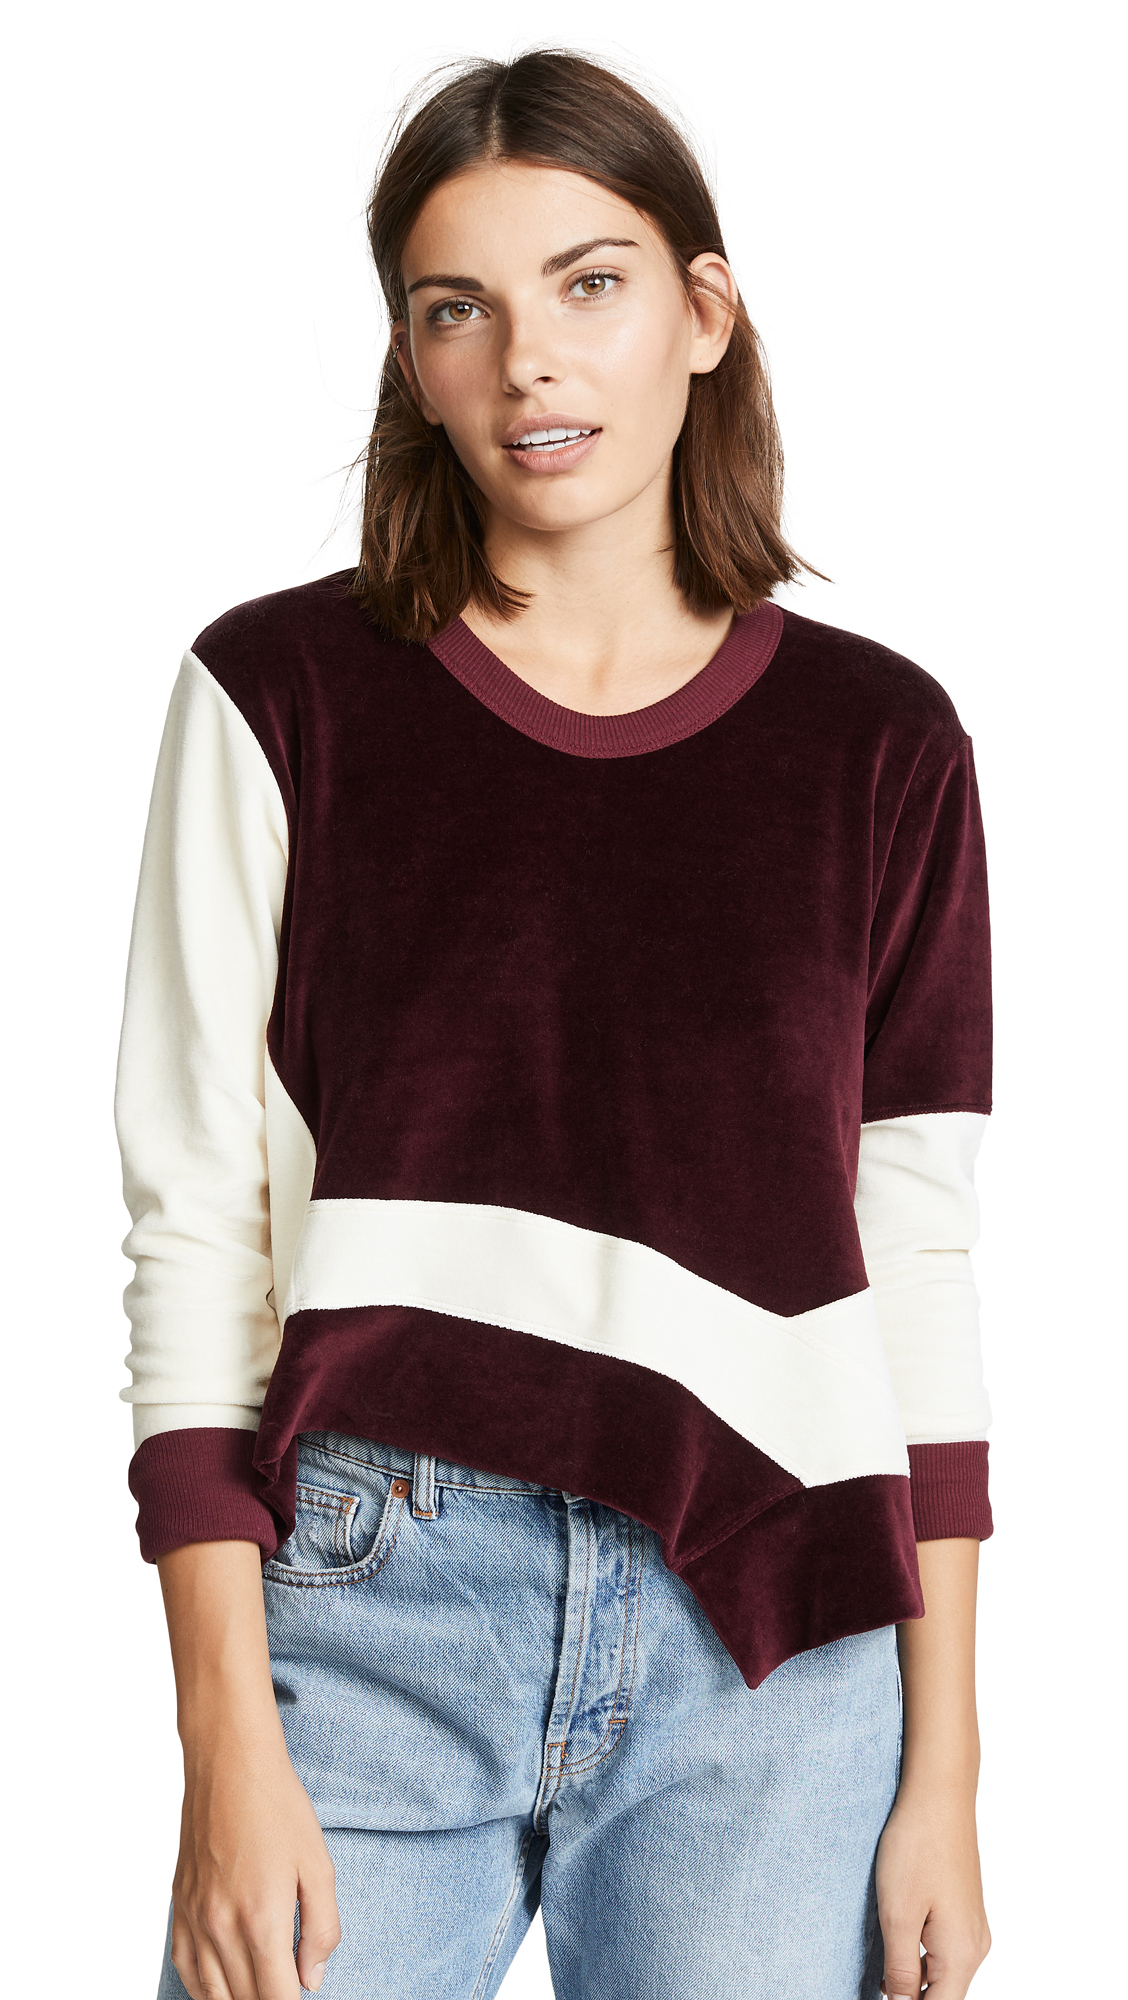 Wilt Slant Mixed Easy Crew Sweatshirt In Garnet/Cream